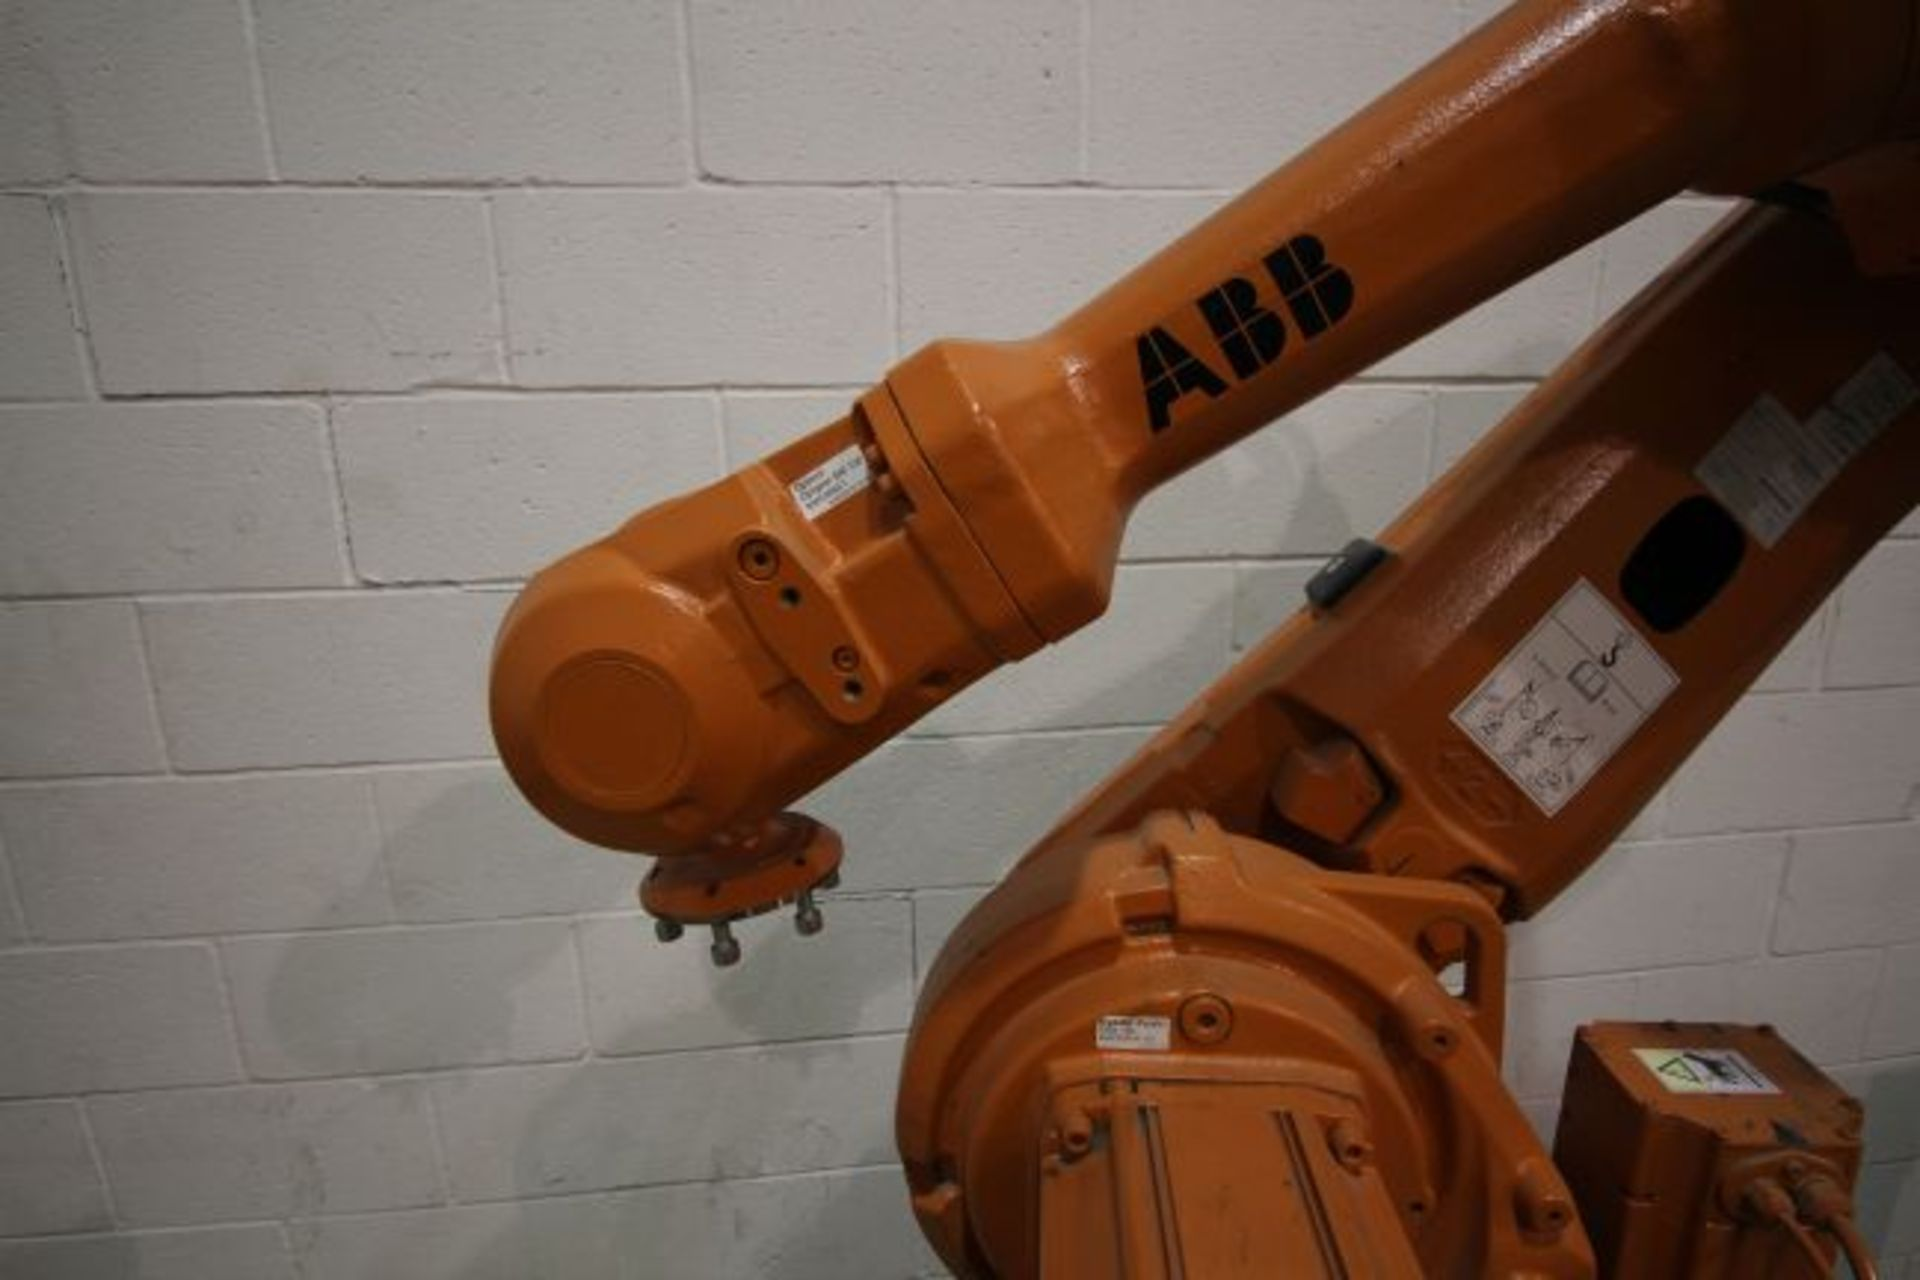 Lot 1 - ABB ROBOT IRB 4600 2.05/45KG WITH IRC5 CONTROLS, YEAR 2013, SN 500286 CABLES NO TEACH PENDANT